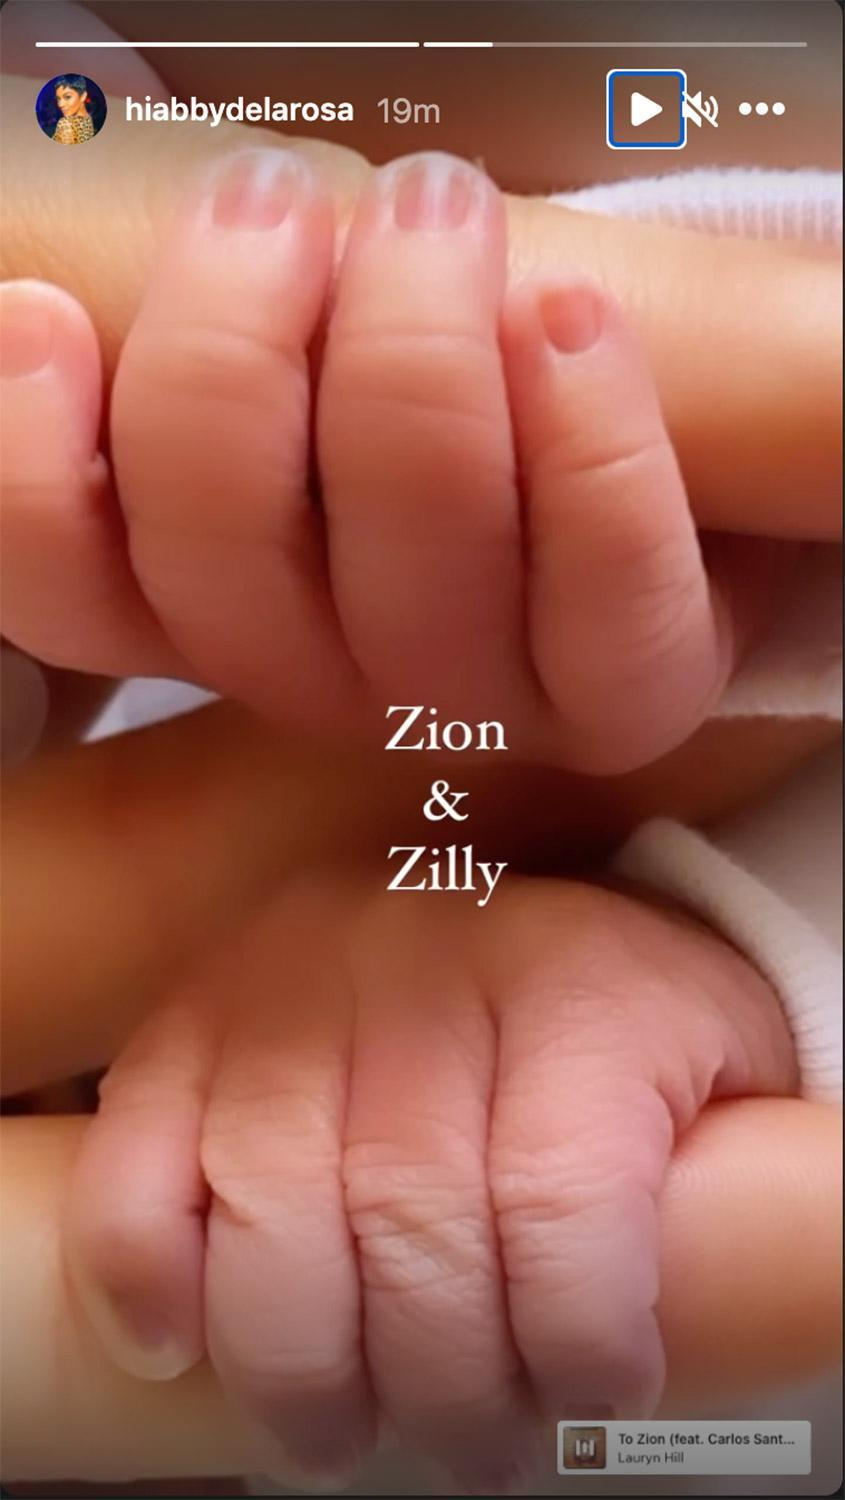 """<p>De La Rosa also shared a photo of the babies' hands holding onto her fingers on her Instagram Stories, writing, """"Zion & Zilly.""""</p> <p>The <a href=""""https://people.com/parents/nick-cannon-abby-de-la-rosa-welcome-twin-boys-zion-zillion/"""" rel=""""nofollow noopener"""" target=""""_blank"""" data-ylk=""""slk:new mom announced Cannon was her babies' father"""" class=""""link rapid-noclick-resp"""">new mom announced Cannon was her babies' father</a> on Instagram in April when she shared photos from a maternity shoot that featured the <a href=""""https://people.com/tv/the-masked-singer-revealed-so-far/"""" rel=""""nofollow noopener"""" target=""""_blank"""" data-ylk=""""slk:Masked Singer"""" class=""""link rapid-noclick-resp""""><em>Masked Singer</em></a> host.</p> <p>""""Your Dad & I will always be here for you both; in complete unison and support. No matter what this world may throw your way, know that forgiveness is key and what is for you - is for YOU! You both are already so loved and we can't wait to meet you both,"""" De La Rosa wrote at the time. That post has since been deleted from her Instagram page.</p>"""